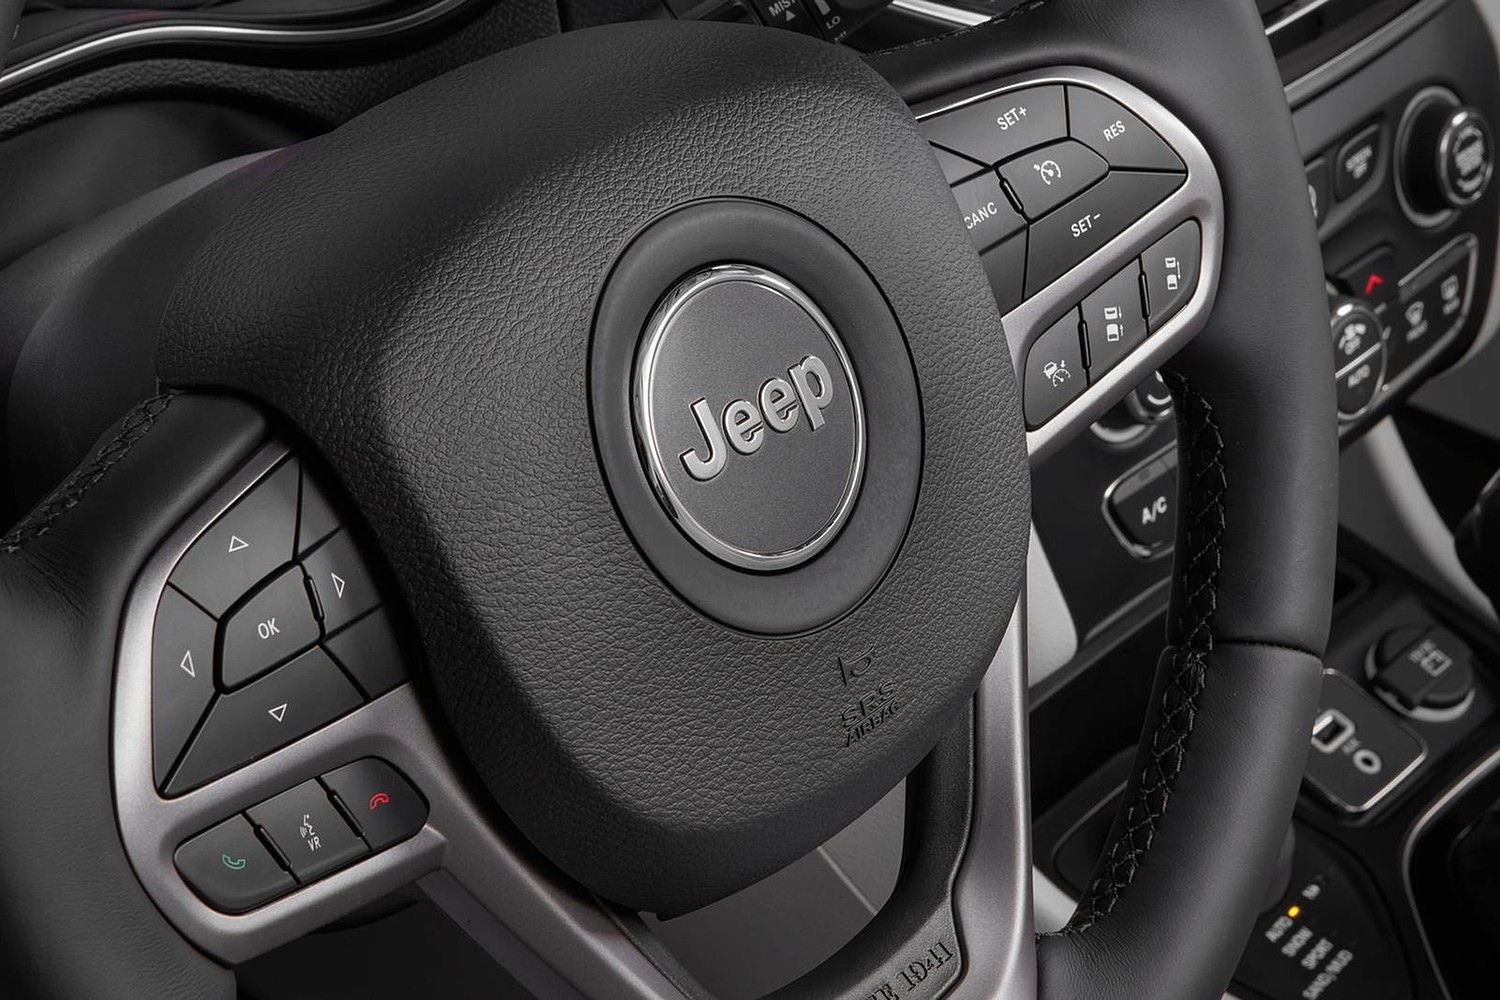 2019 Jeep Cherokee Limited 4dr SUV Aux Controls Shown